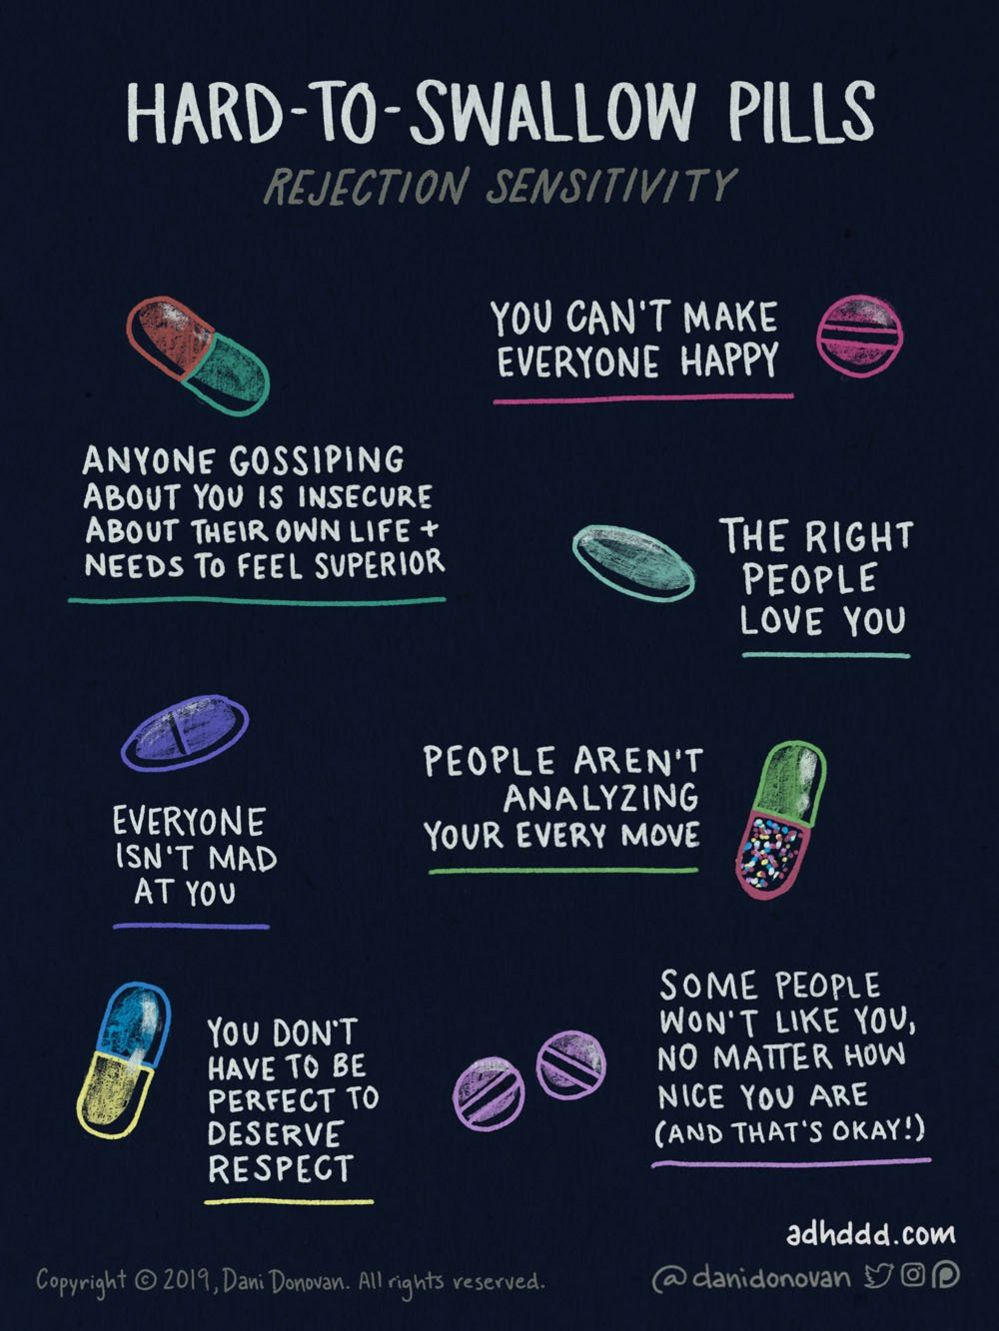 Graphic entitled 'Hard to Swallow Pills' and a sub-heading of 'rejection sensitivity'. One pink pill for 'You can't make everyone happy'; a red and green capsule for 'Anyone gossiping about you is insecure about their own life and needs to feel superior'; a green pill for 'The right people love you'; a blue pill for 'Everyone isn't mad at you'; a green and dotted pill for 'People aren't analyzing your every move'; a blue and yellow pill for 'You don't have to be perfect to deserve respect' and two purple pills for 'Some people won't like you, no matter how nice you are (and that's okay!).